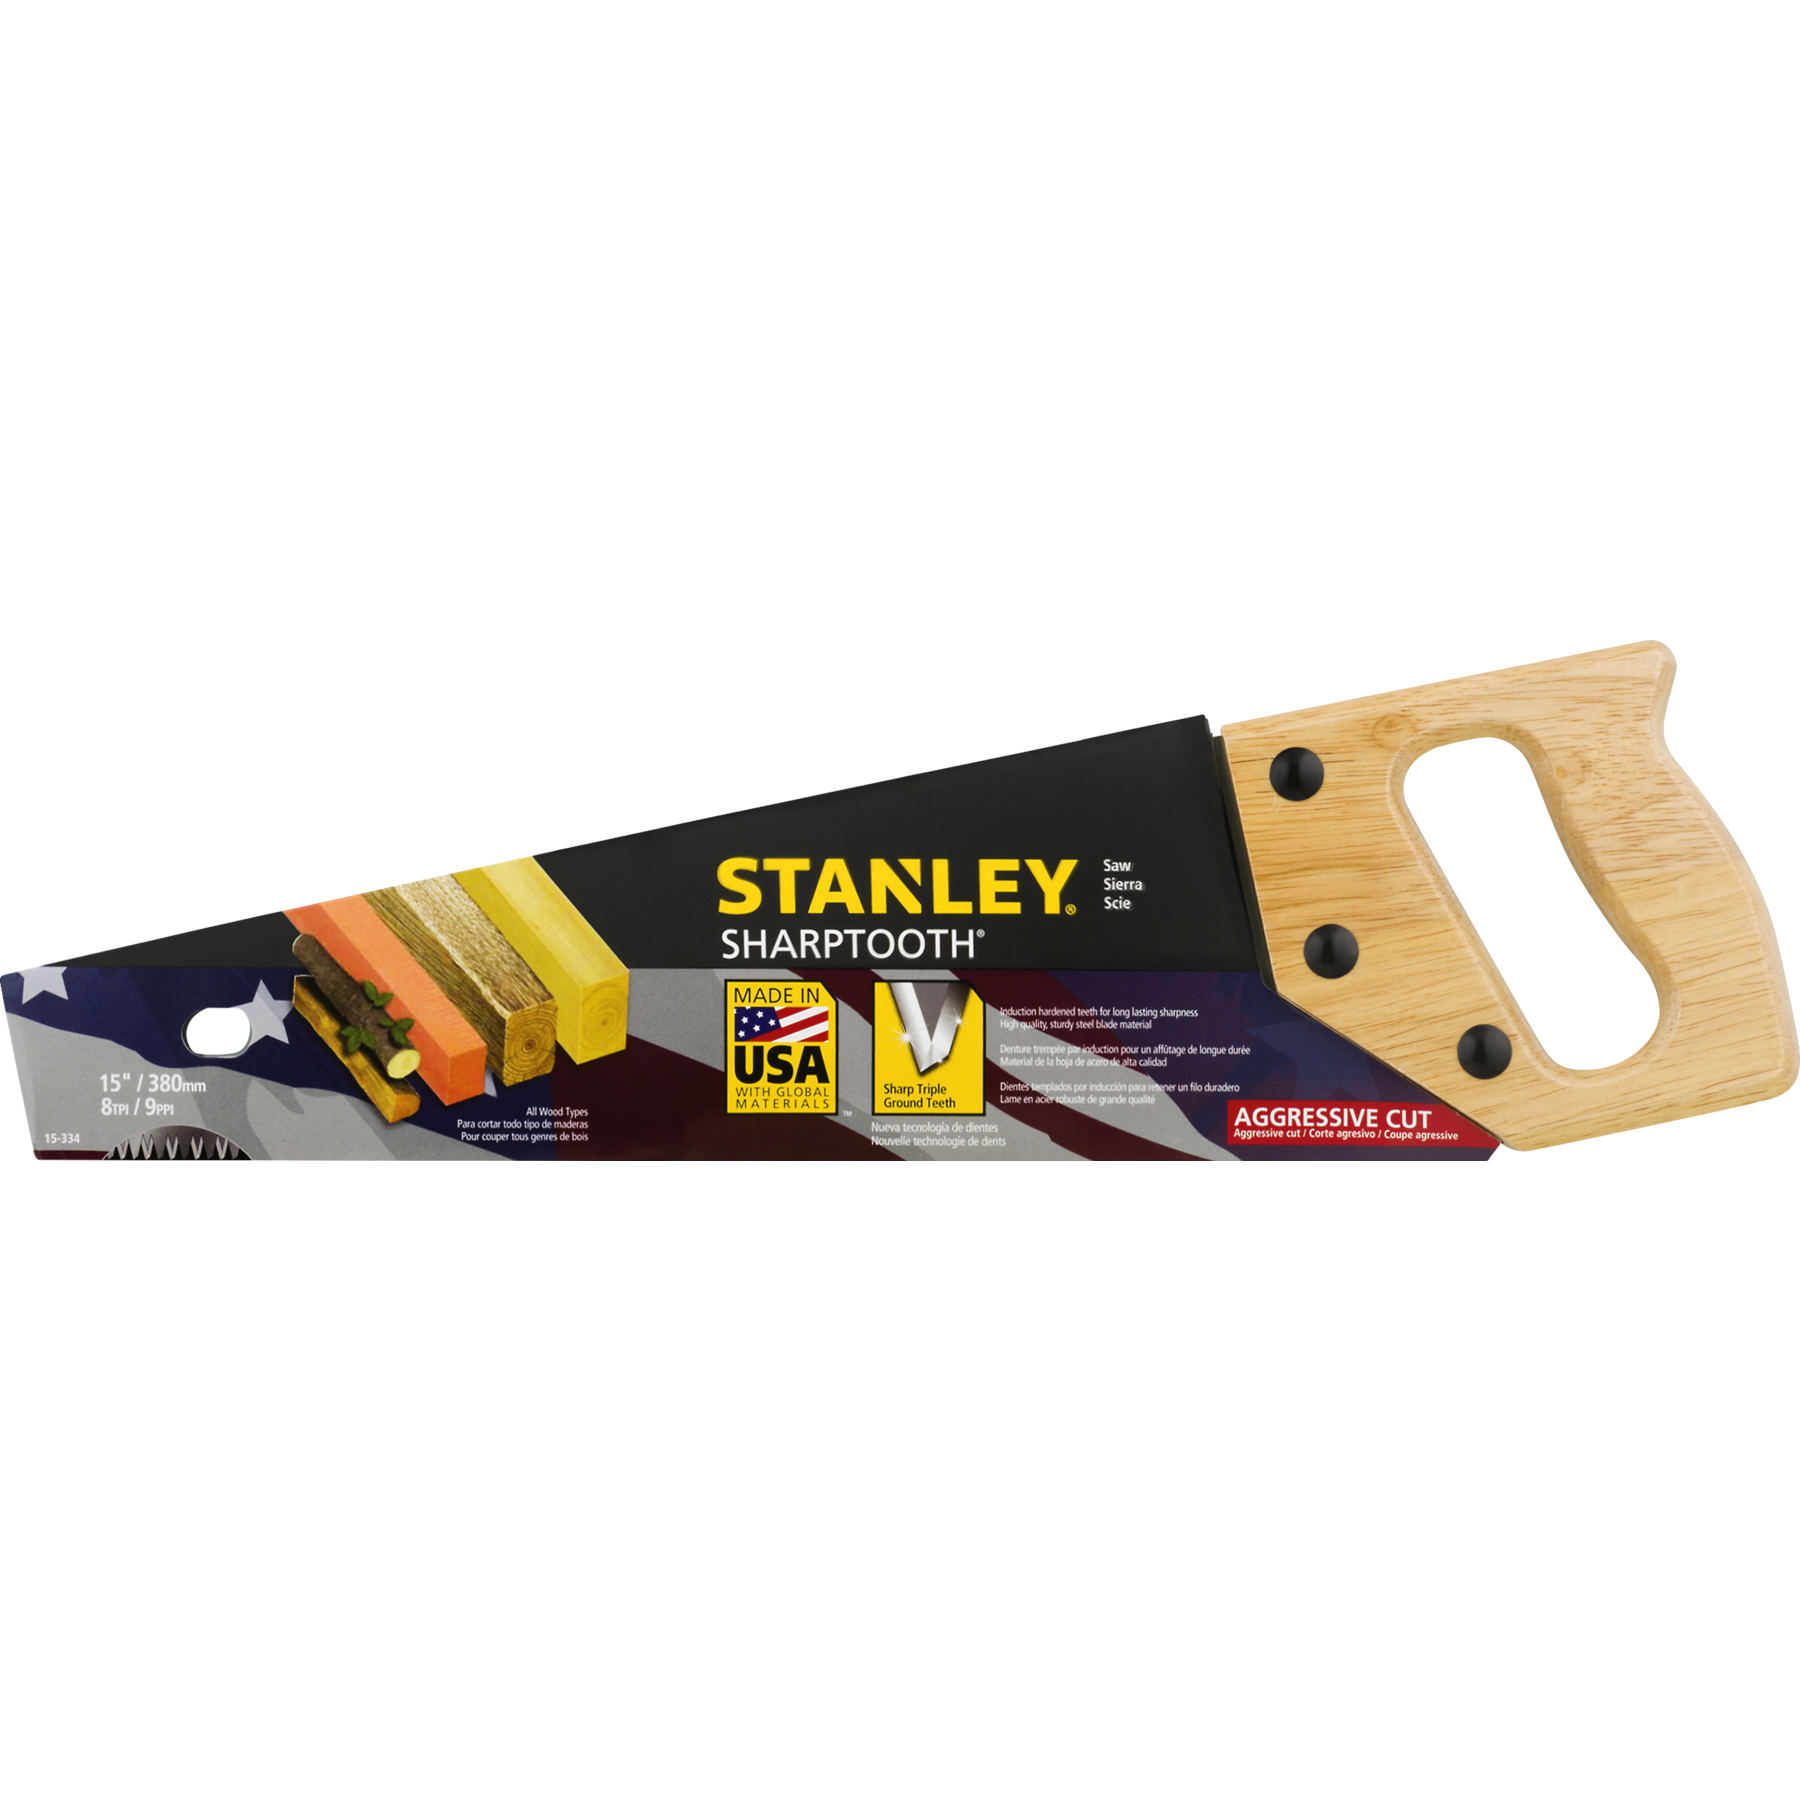 Stanley Sharp Tooth Saw 15', 1.0 CT